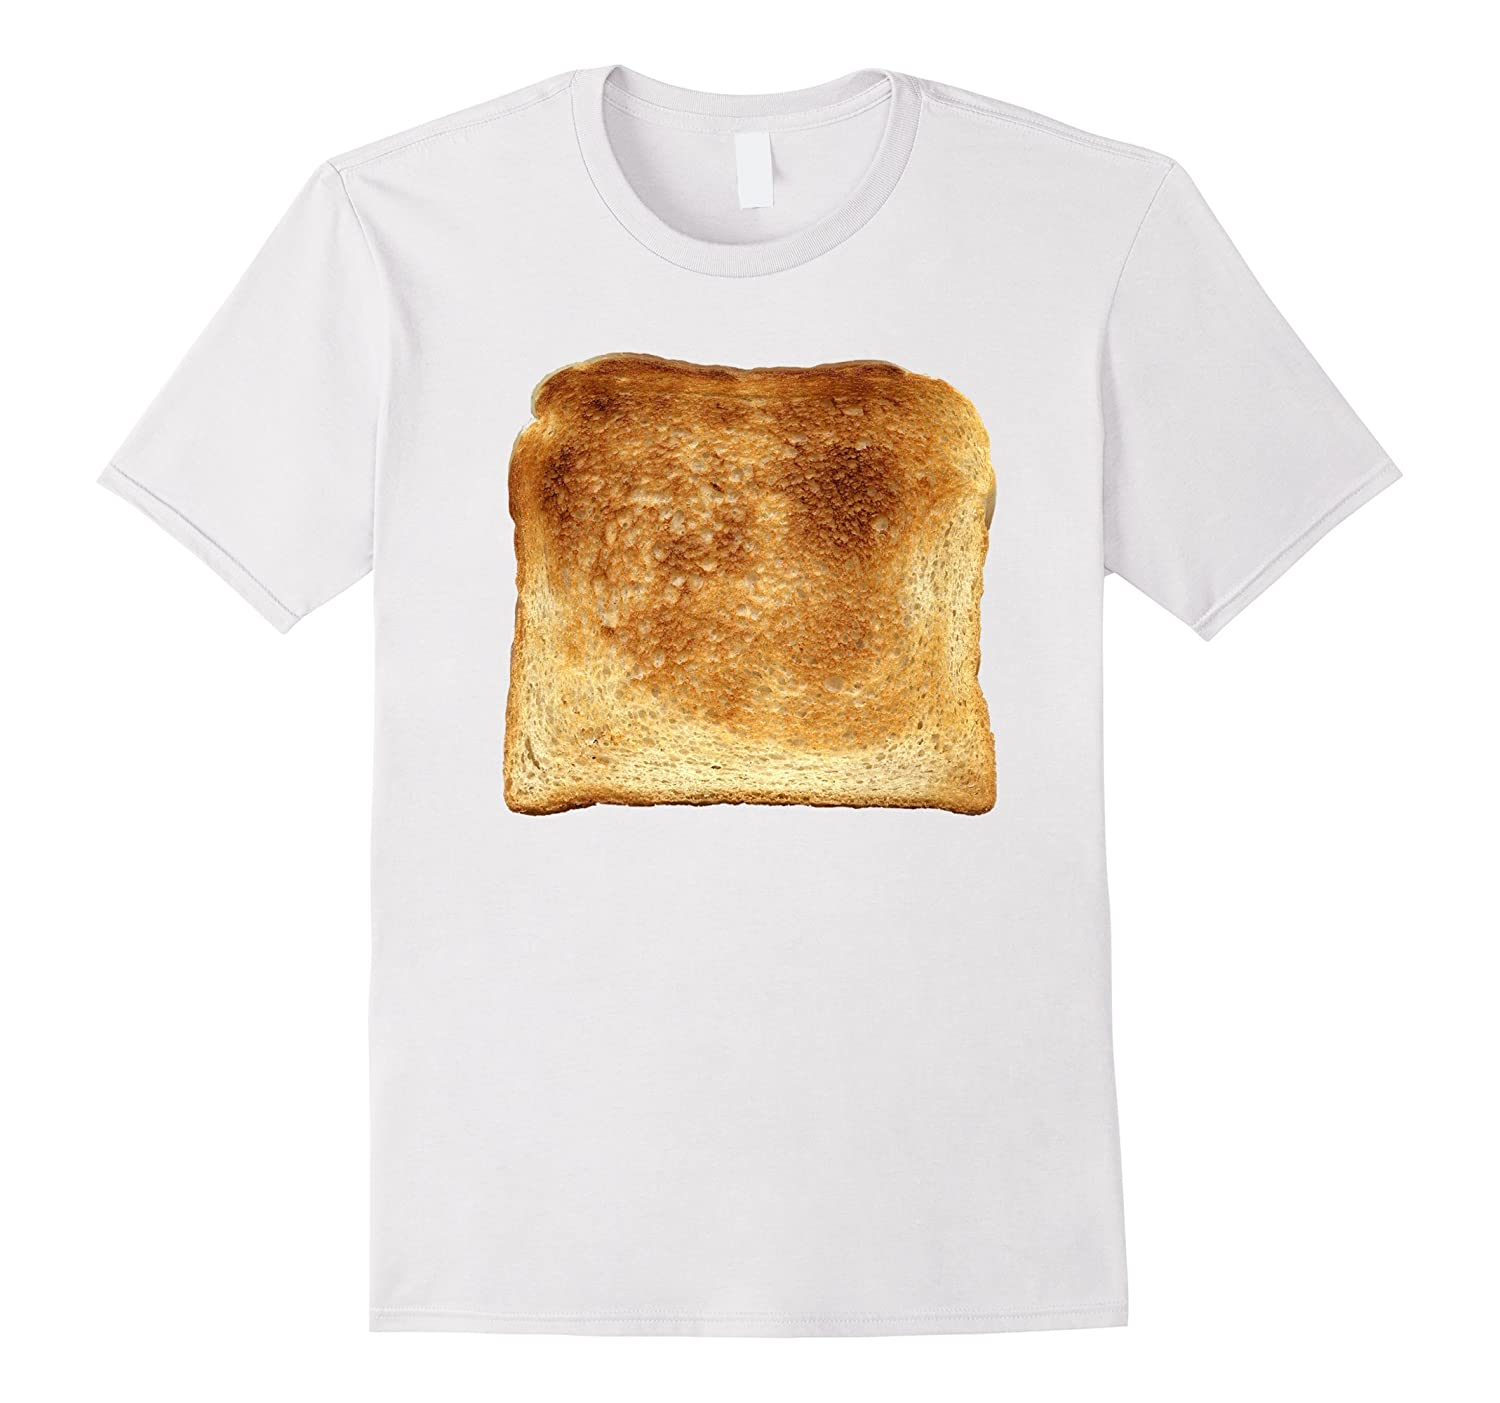 bread toast t shirt halloween costume ideas anz